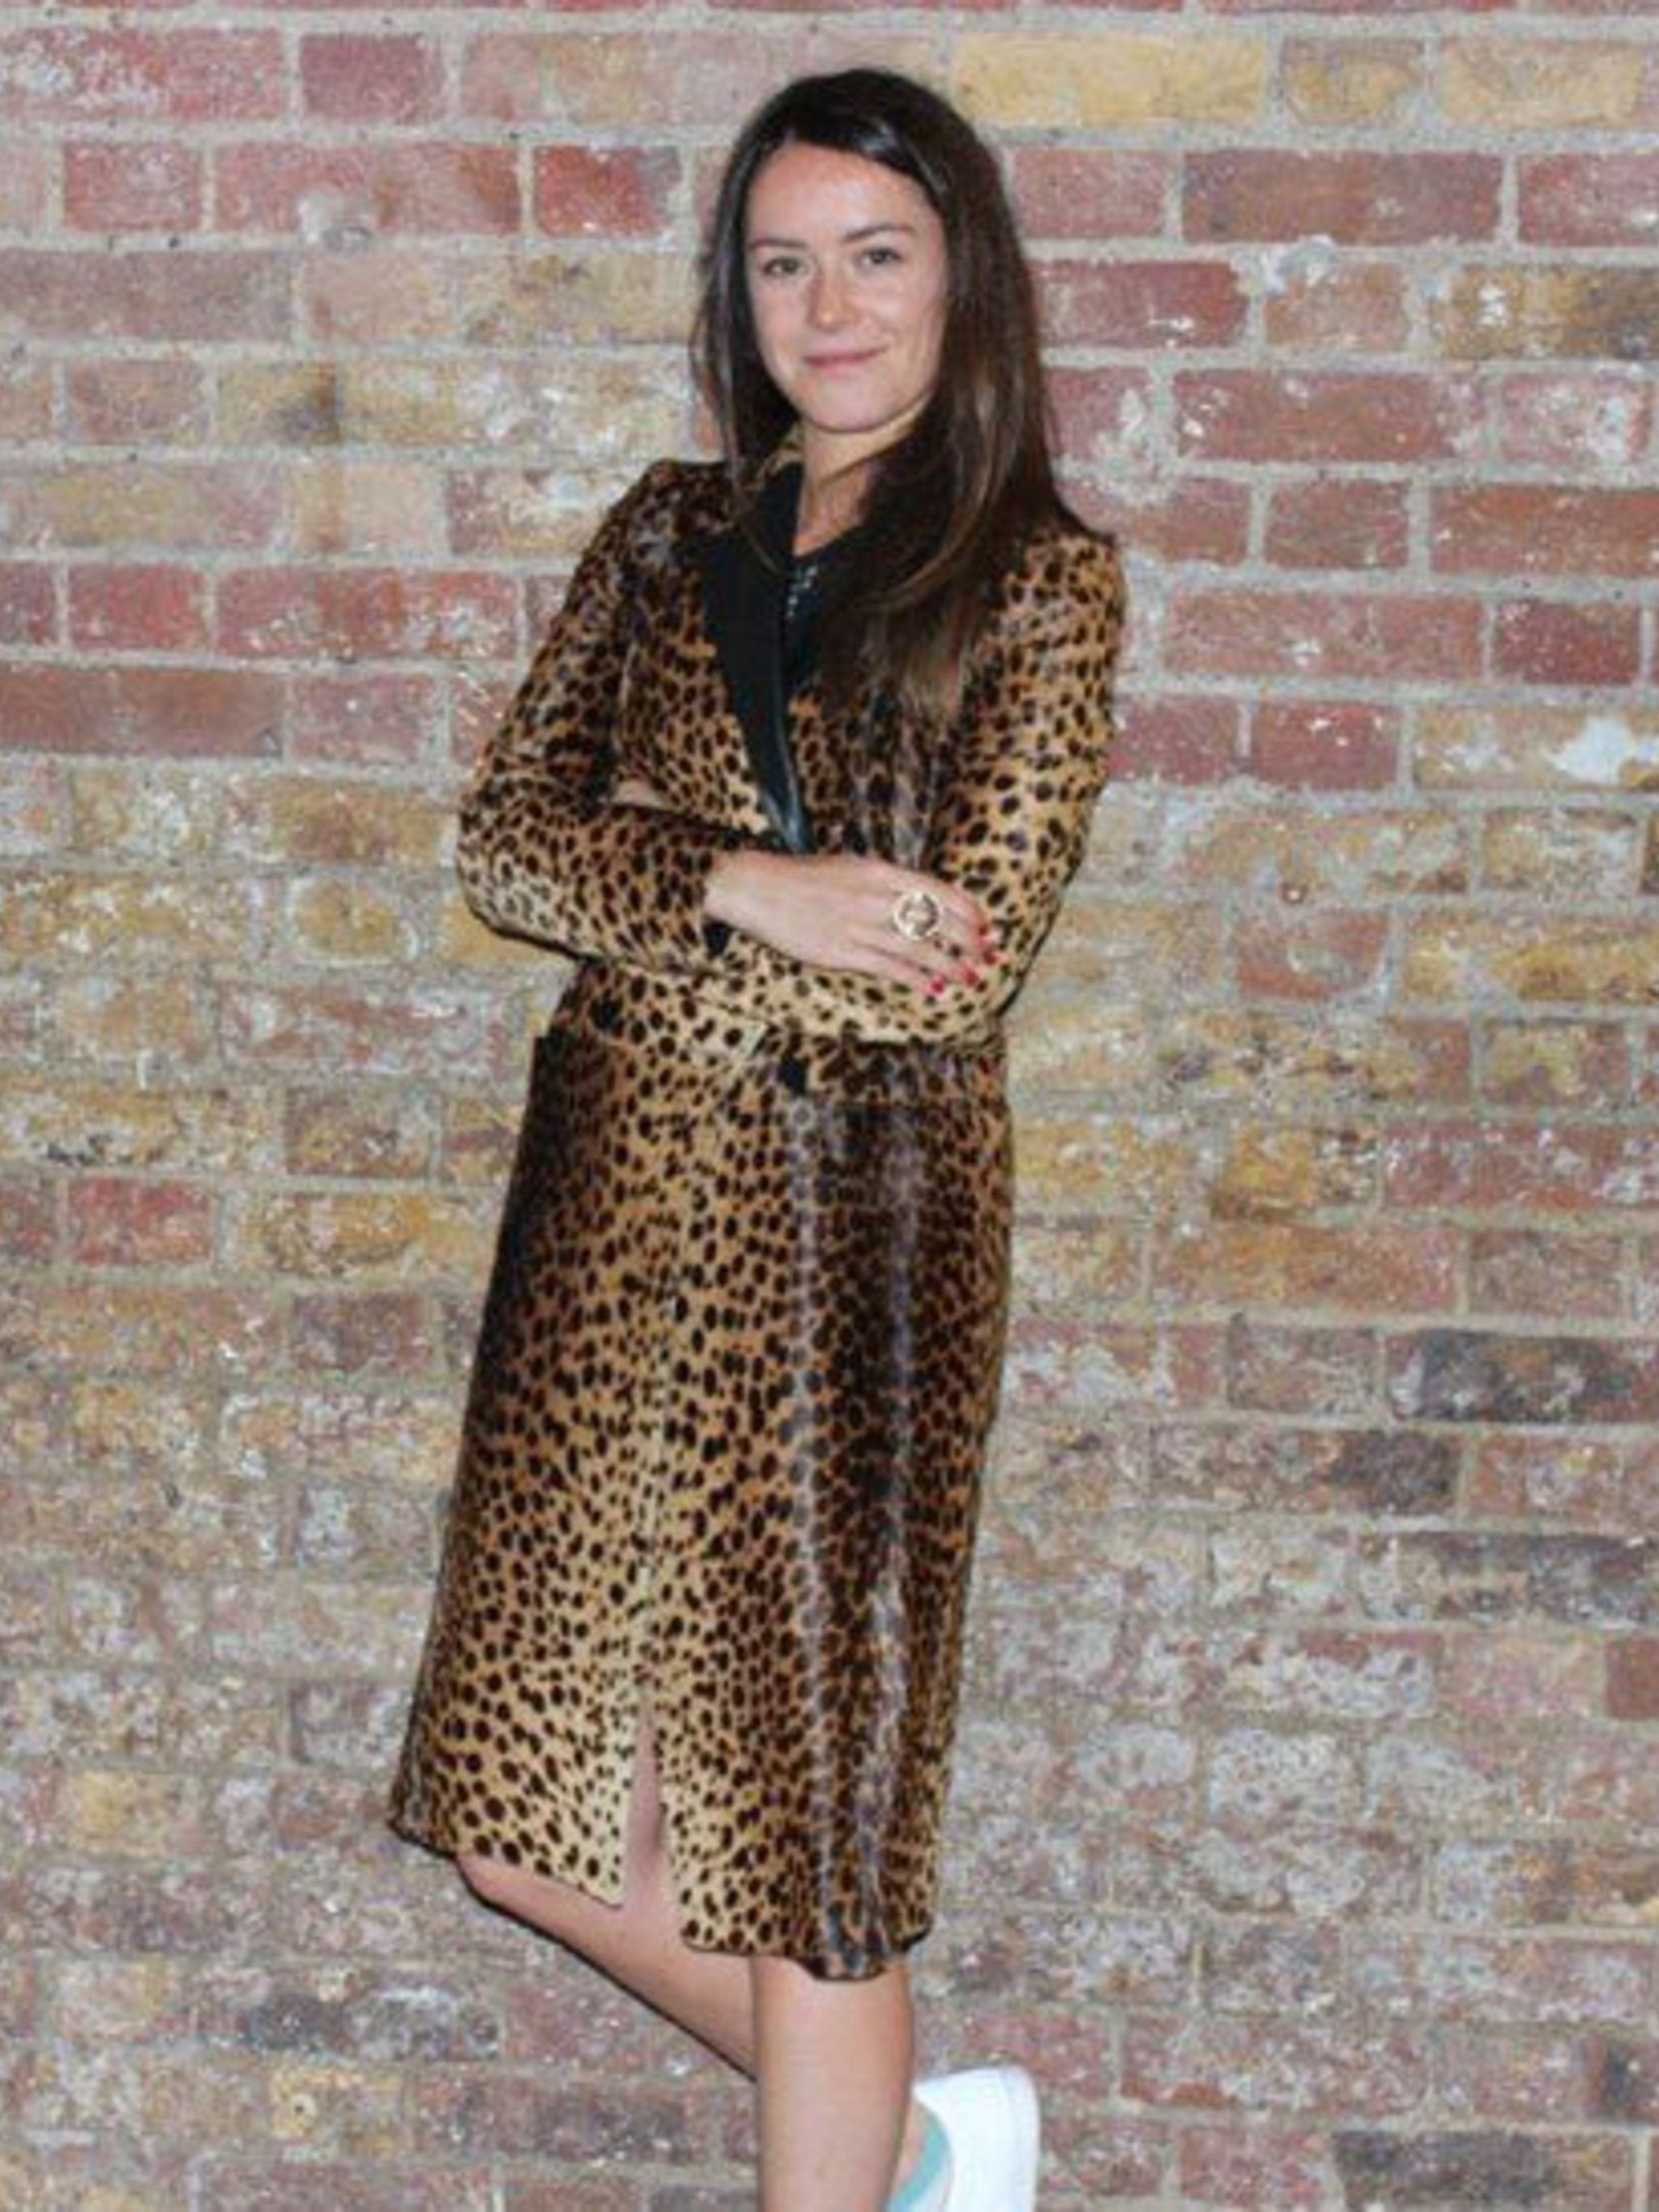 "<p>Alex Eagle, <a href=""http://www.elleuk.com/content/search?SearchText=Joseph&SearchButton=Search+Again"">Joseph</a> global PR: 'I love the JOSEPH Leopard coat because it is chic, warm, cool and fun and everything you could want possibly want in a coa"